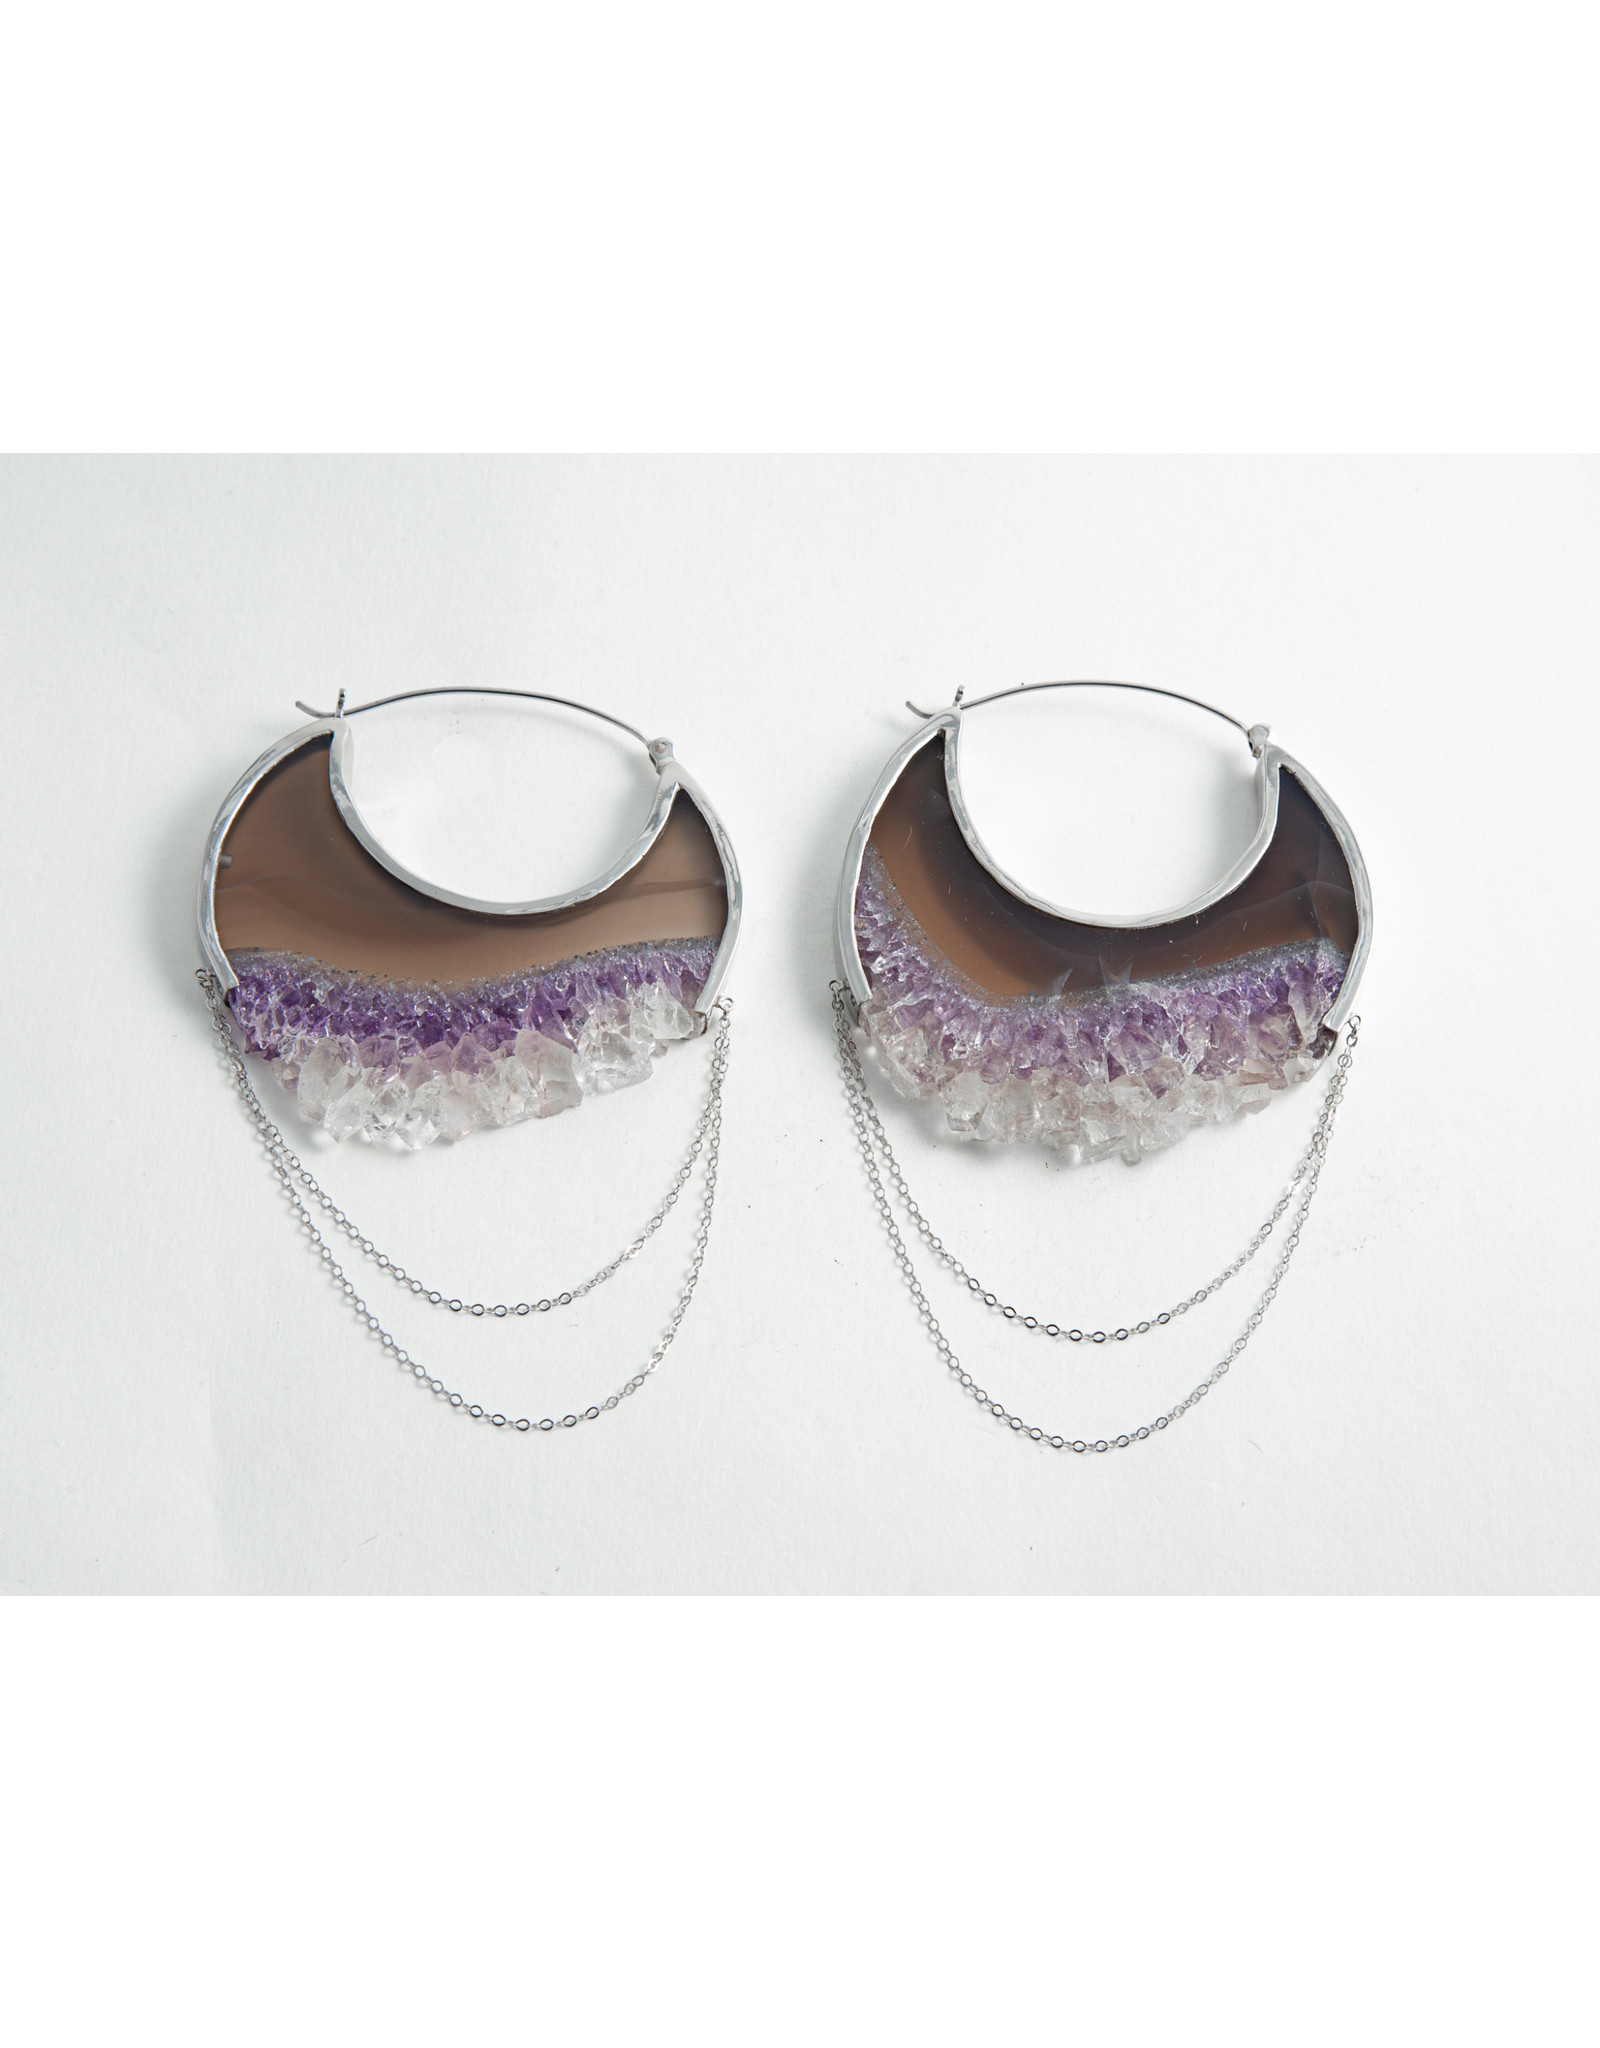 """Buddha Jewelry Organics Buddha Jewelry Organics Silver-set """"Moonstruck"""" with Amethyst"""